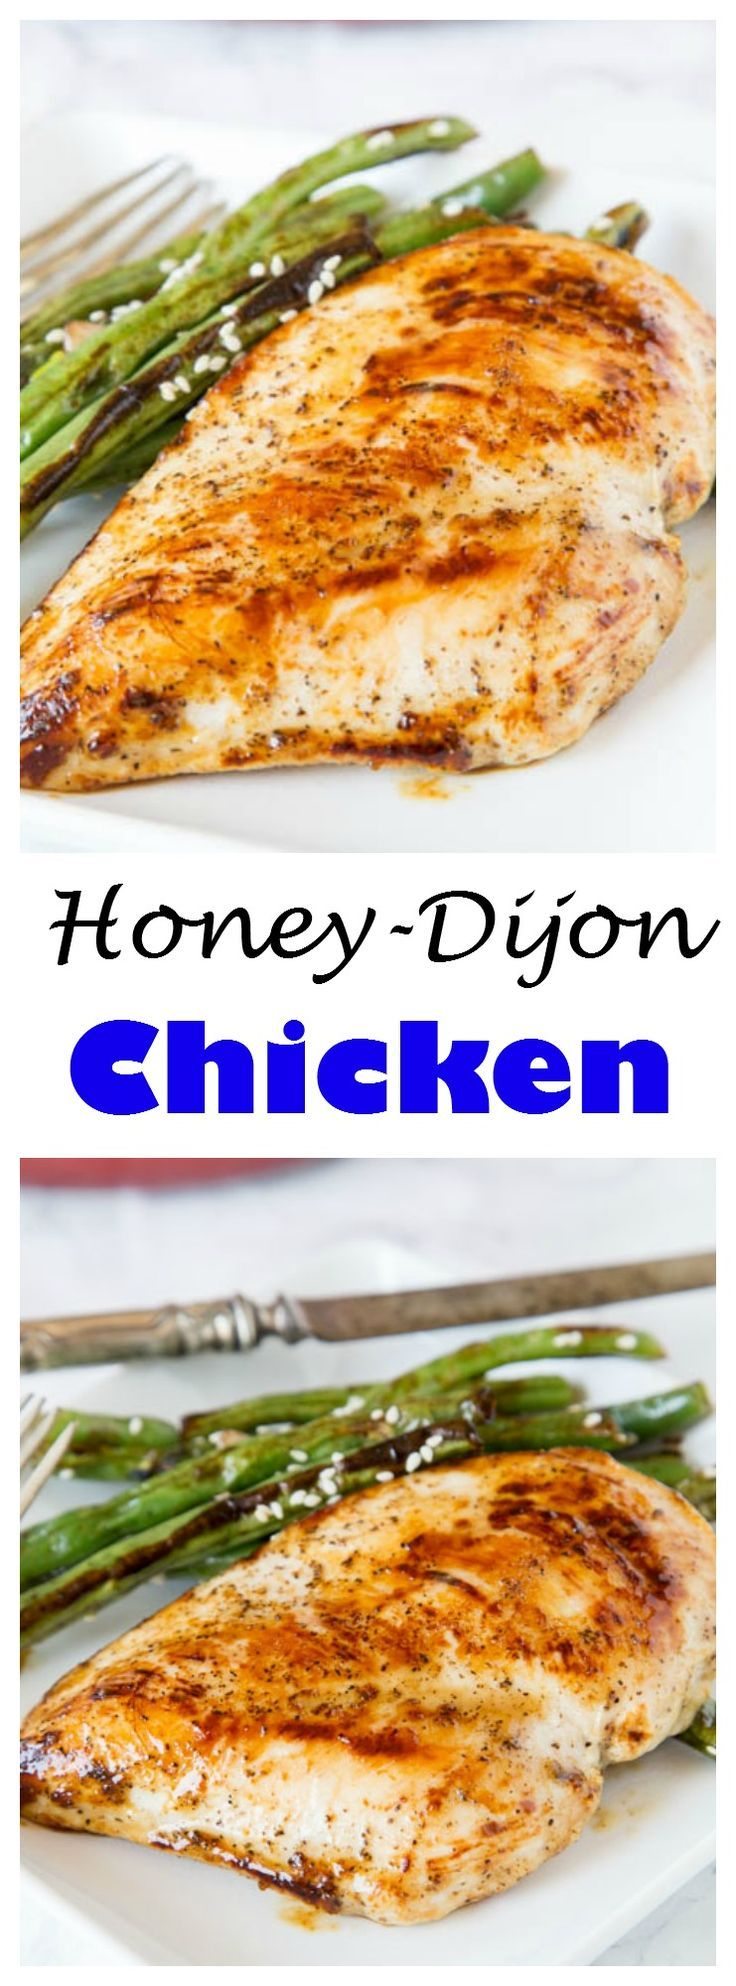 Honey Dijon Chicken - a healthy moist chicken cutlet that is coated with a honey dijon sauce. Ready in minutes, and great for any night of the week.